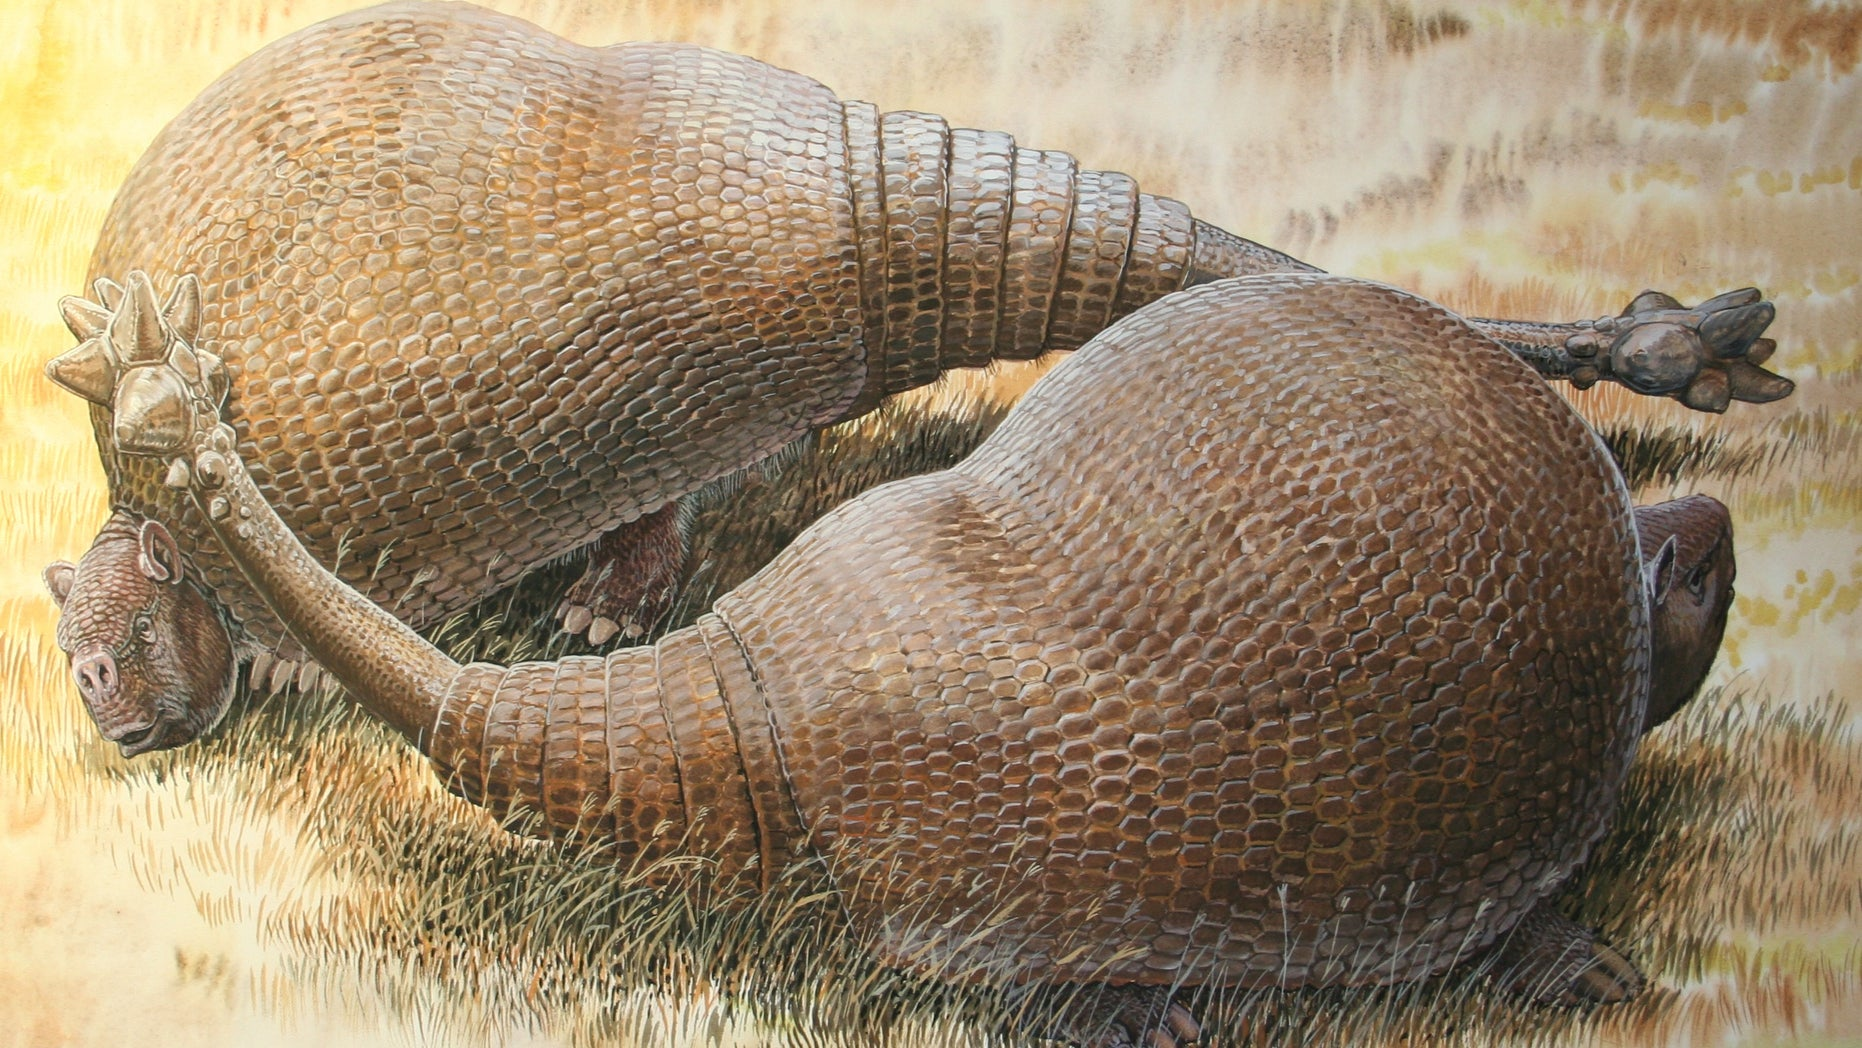 Two male glyptodonts (Doedicurus clavicaudatus) facing off: The massive, club-shaped tails were probably used more for intraspecific combat than defense against predators.  (Peter Schouten)